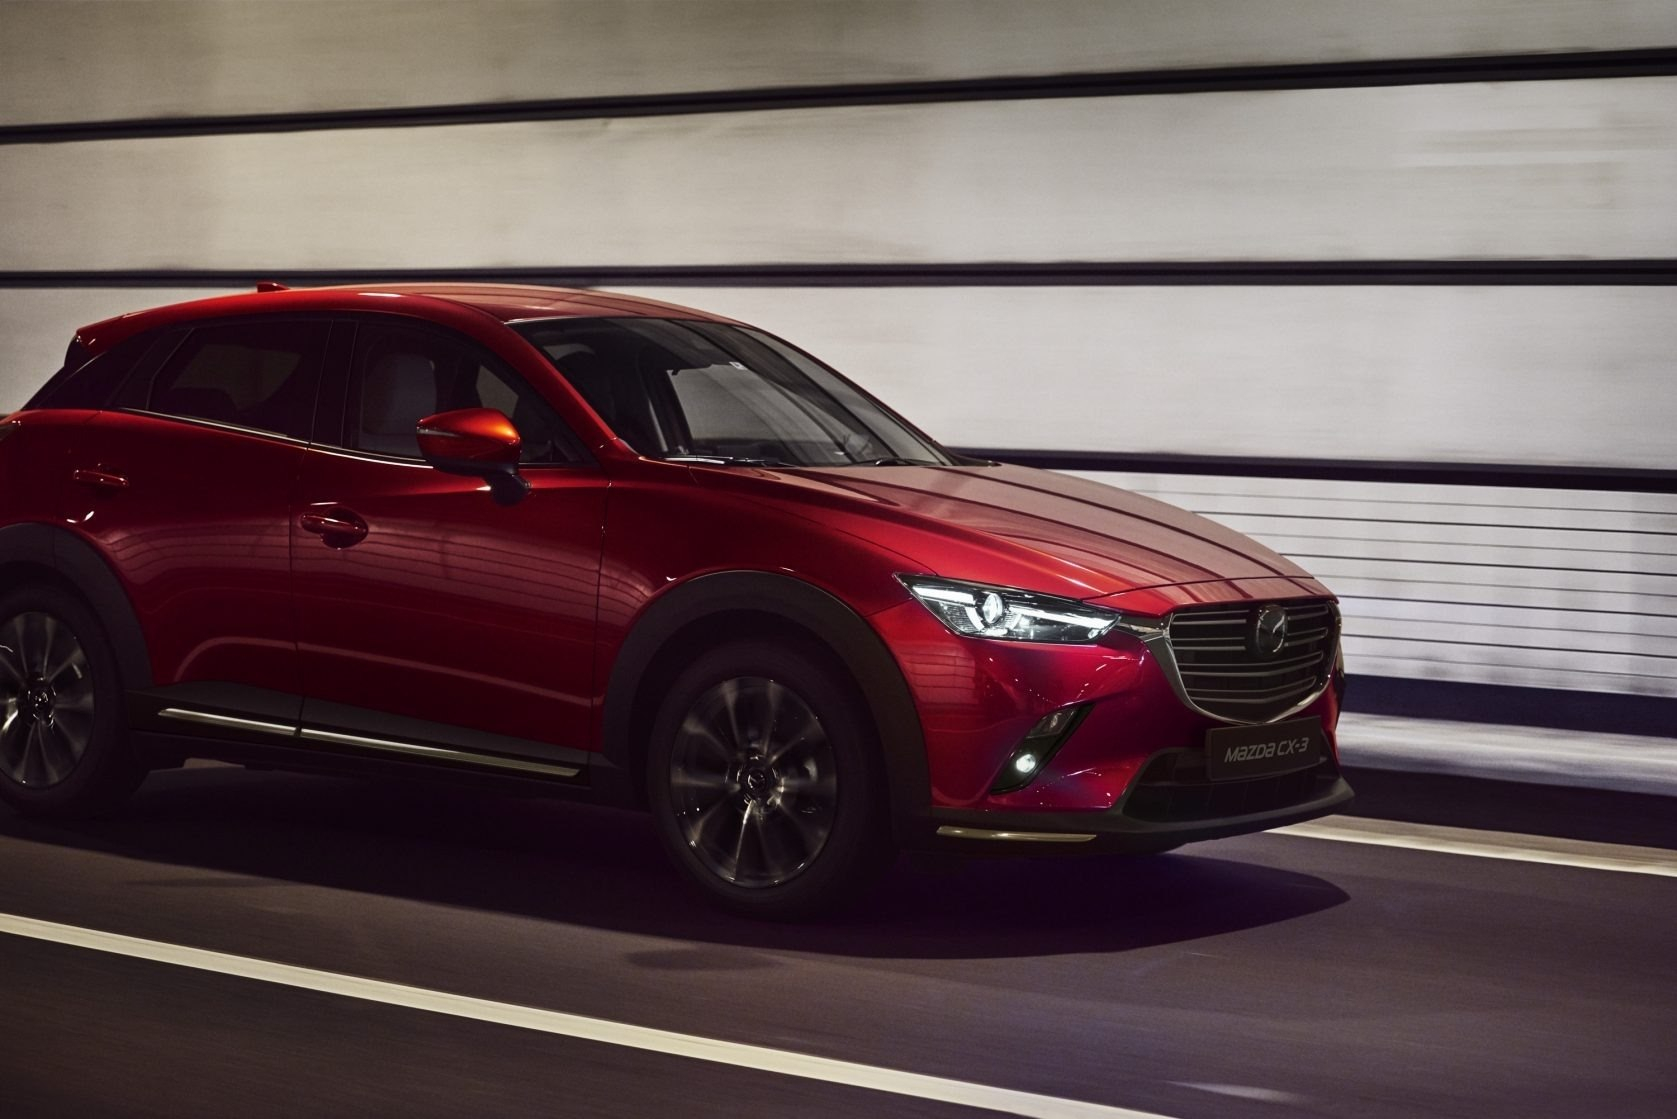 29 All New 2020 Mazda Cx 7 Wallpaper